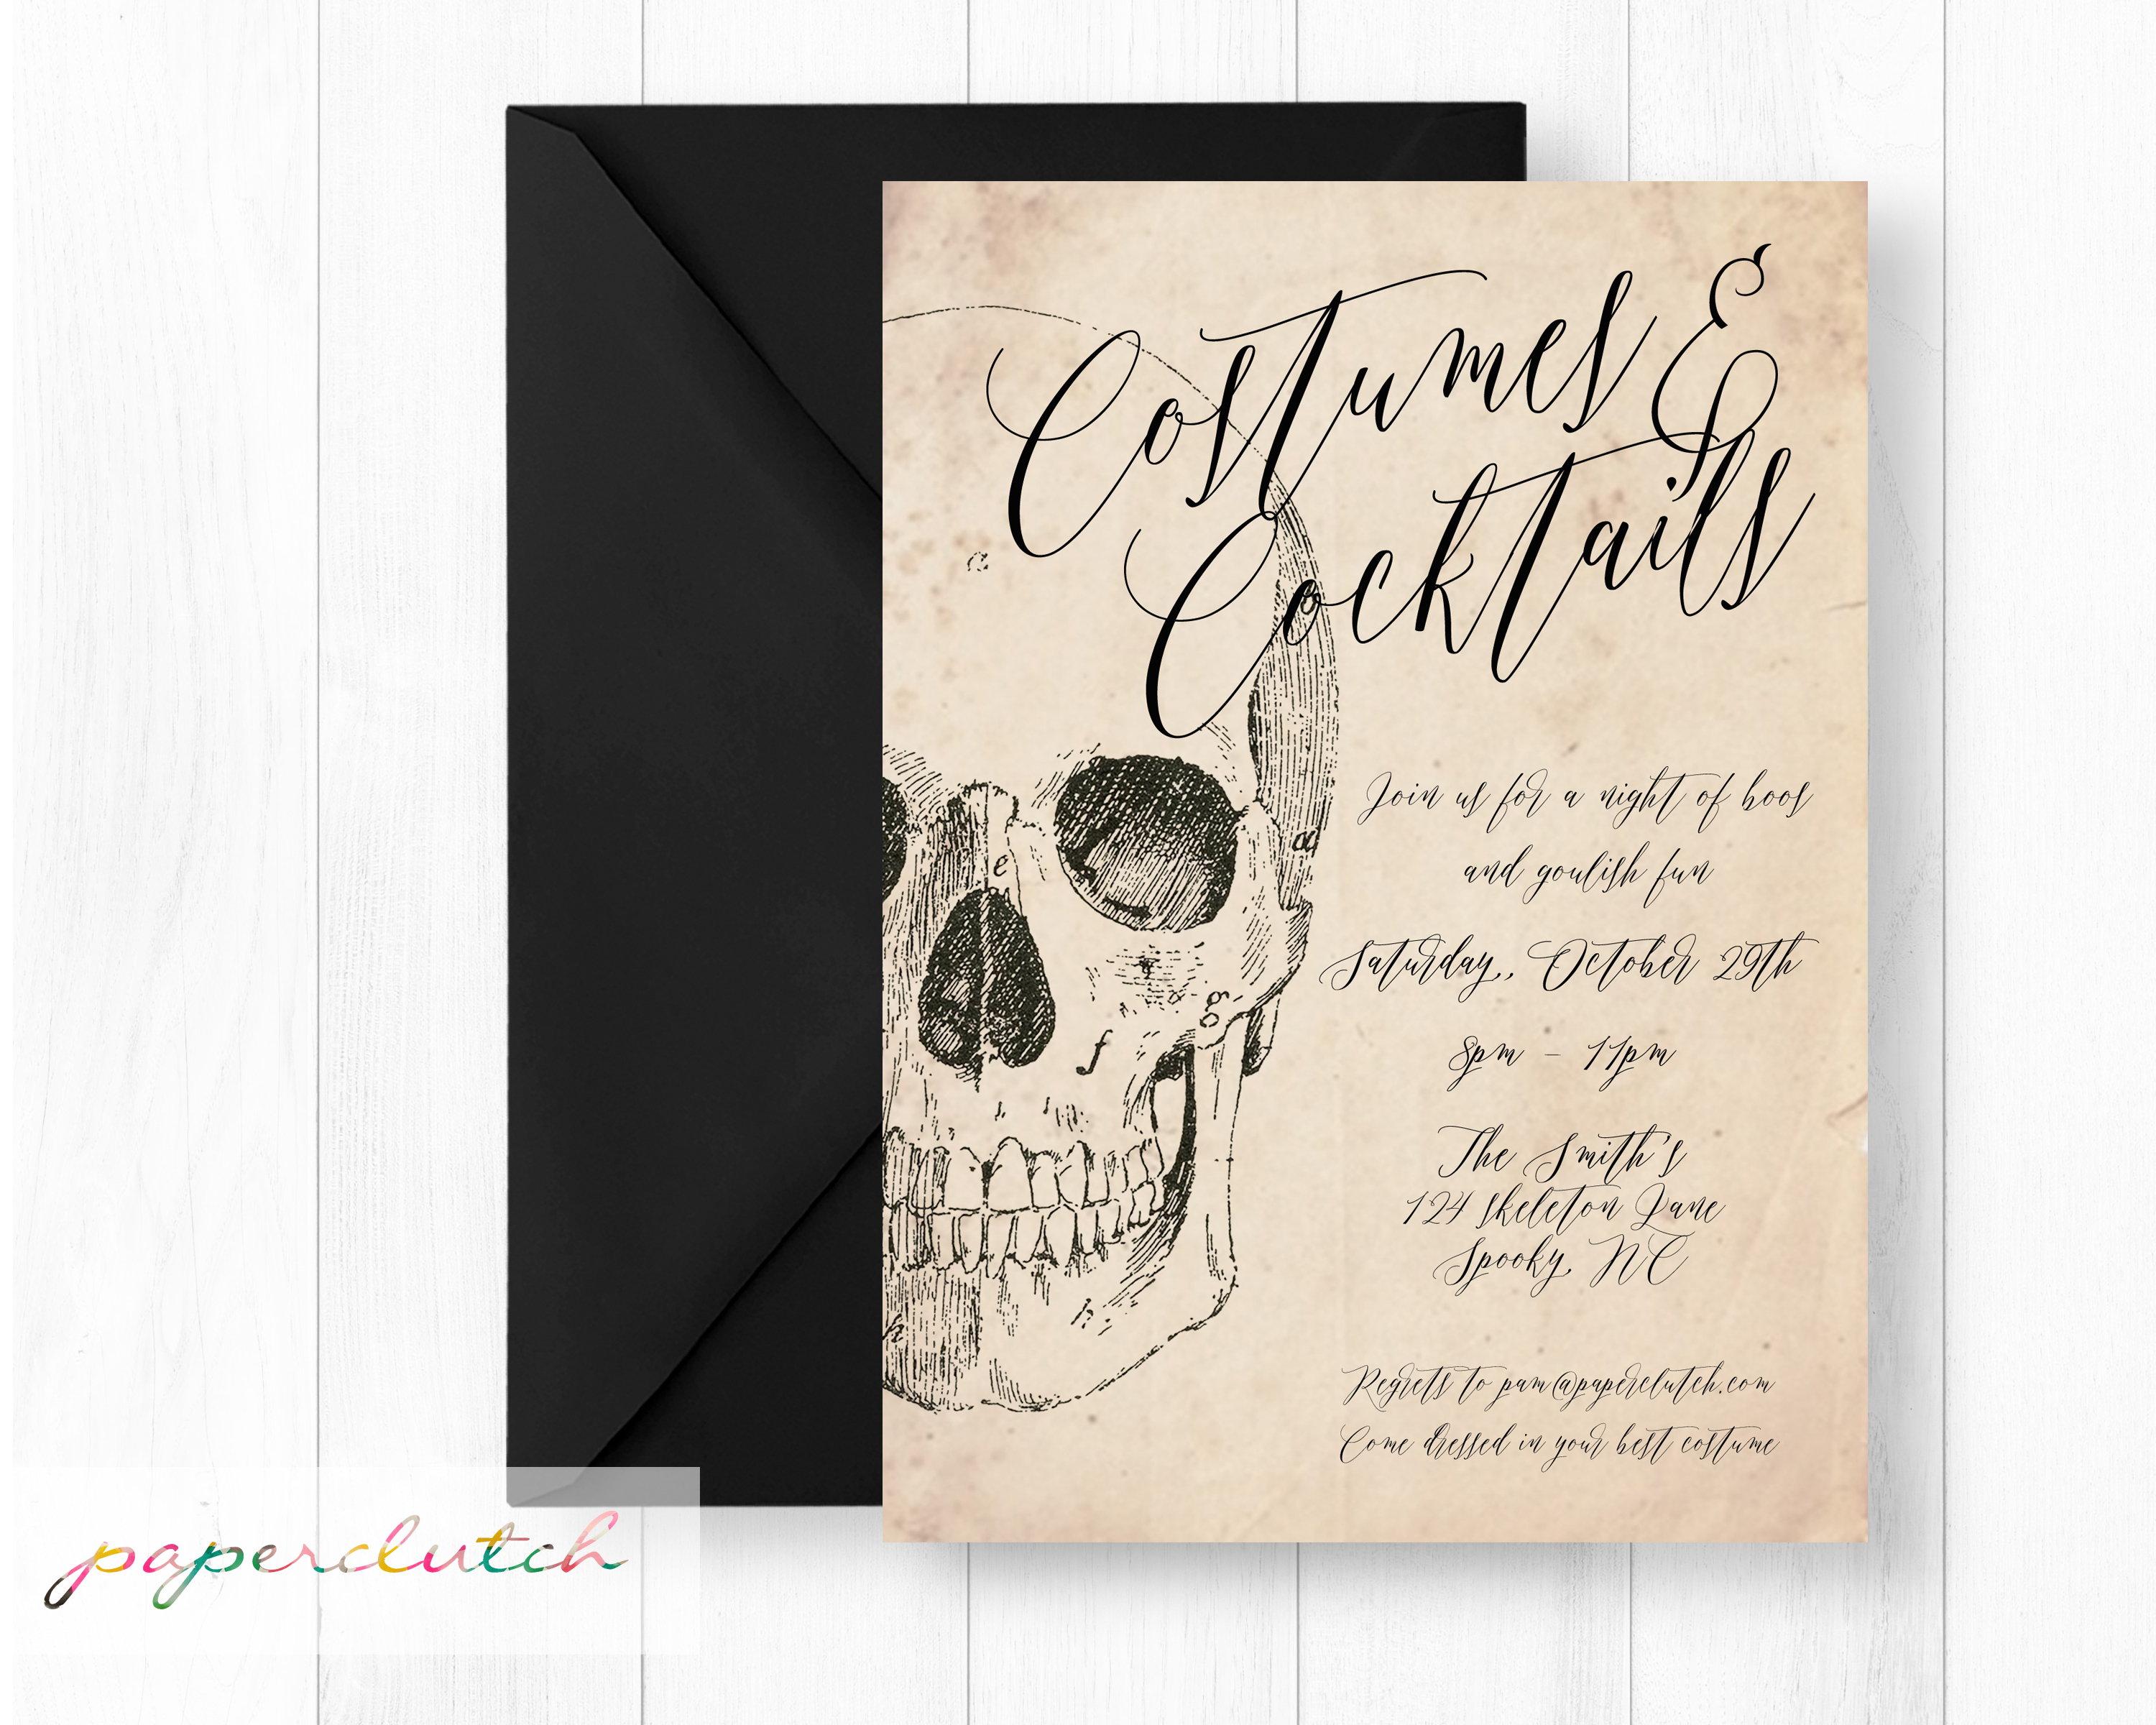 Costume Cocktail Party Invitation